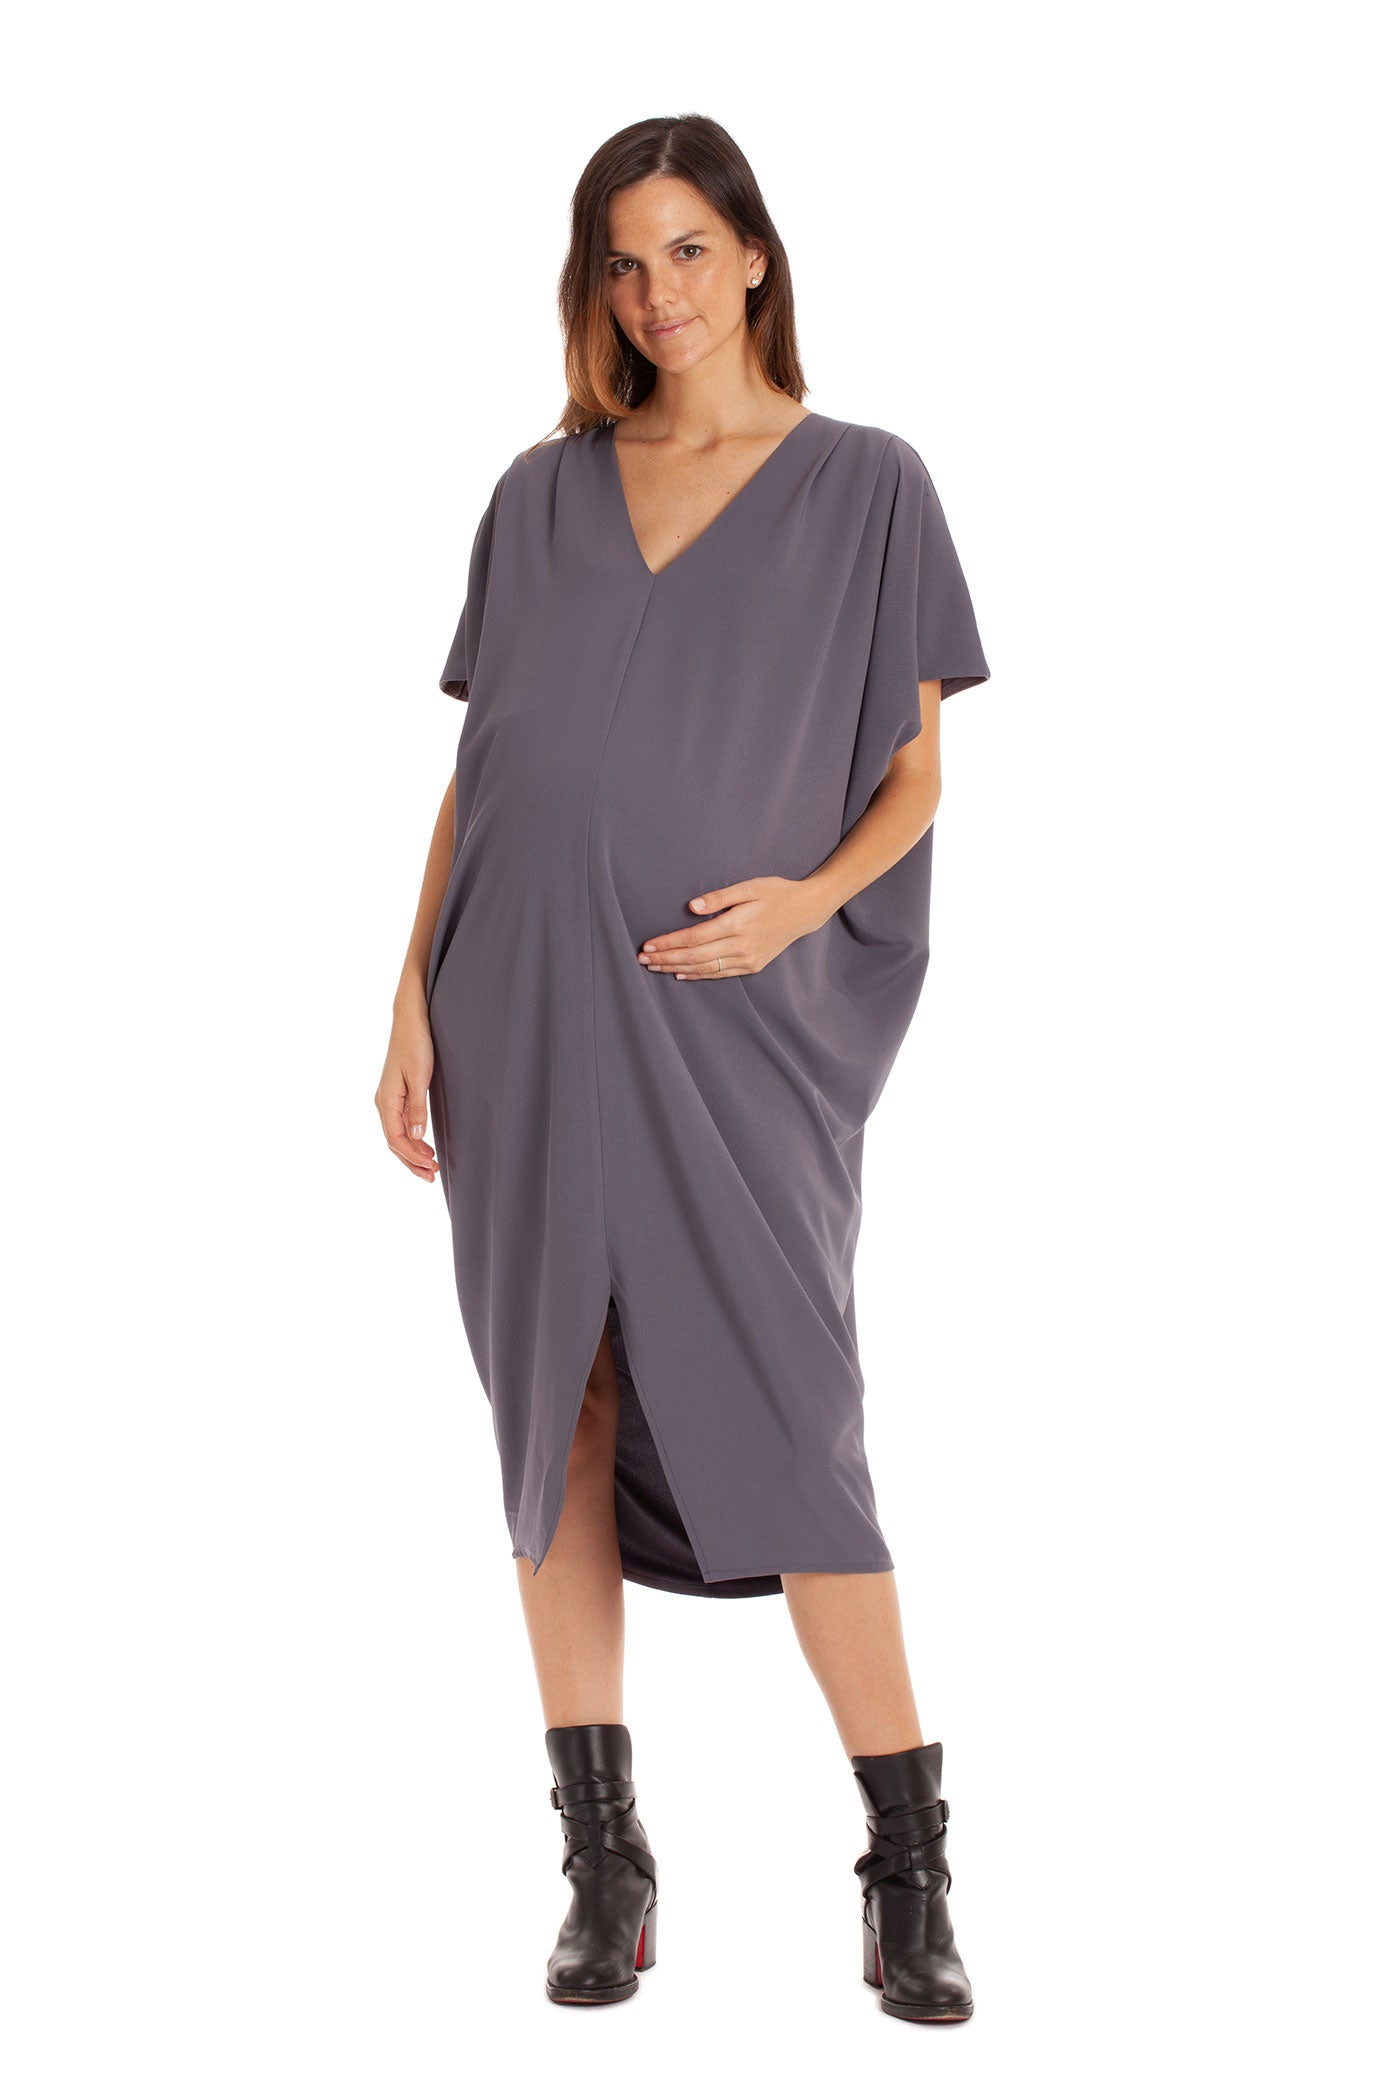 The Sophia Dress - Grey